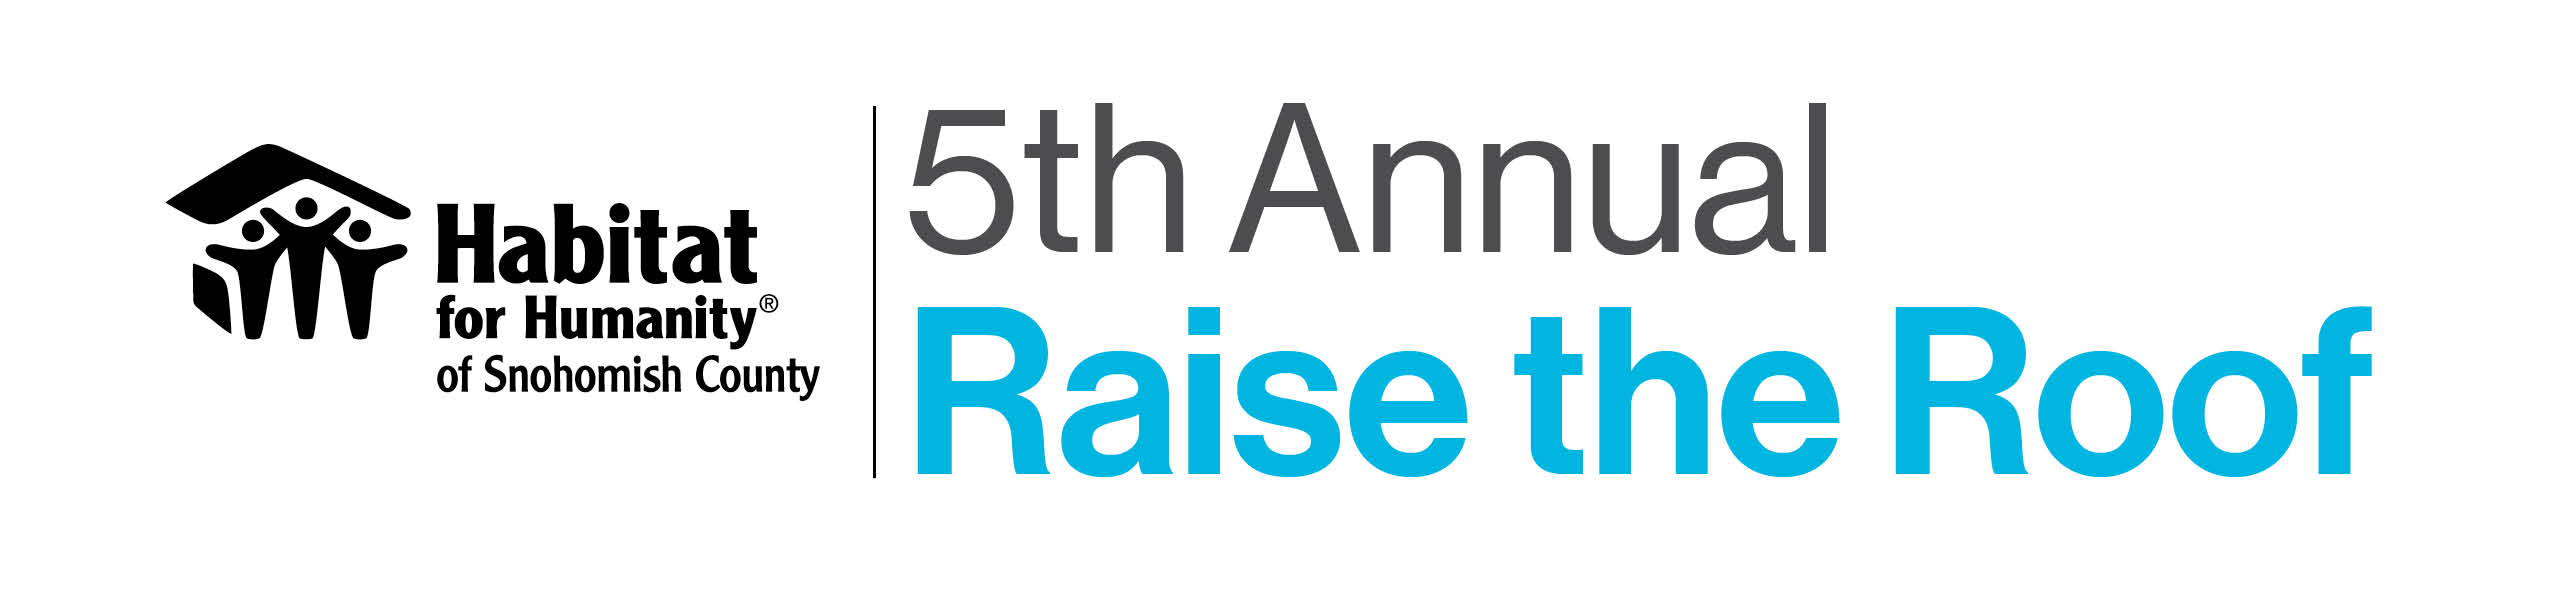 5th Annual Raise the Roof